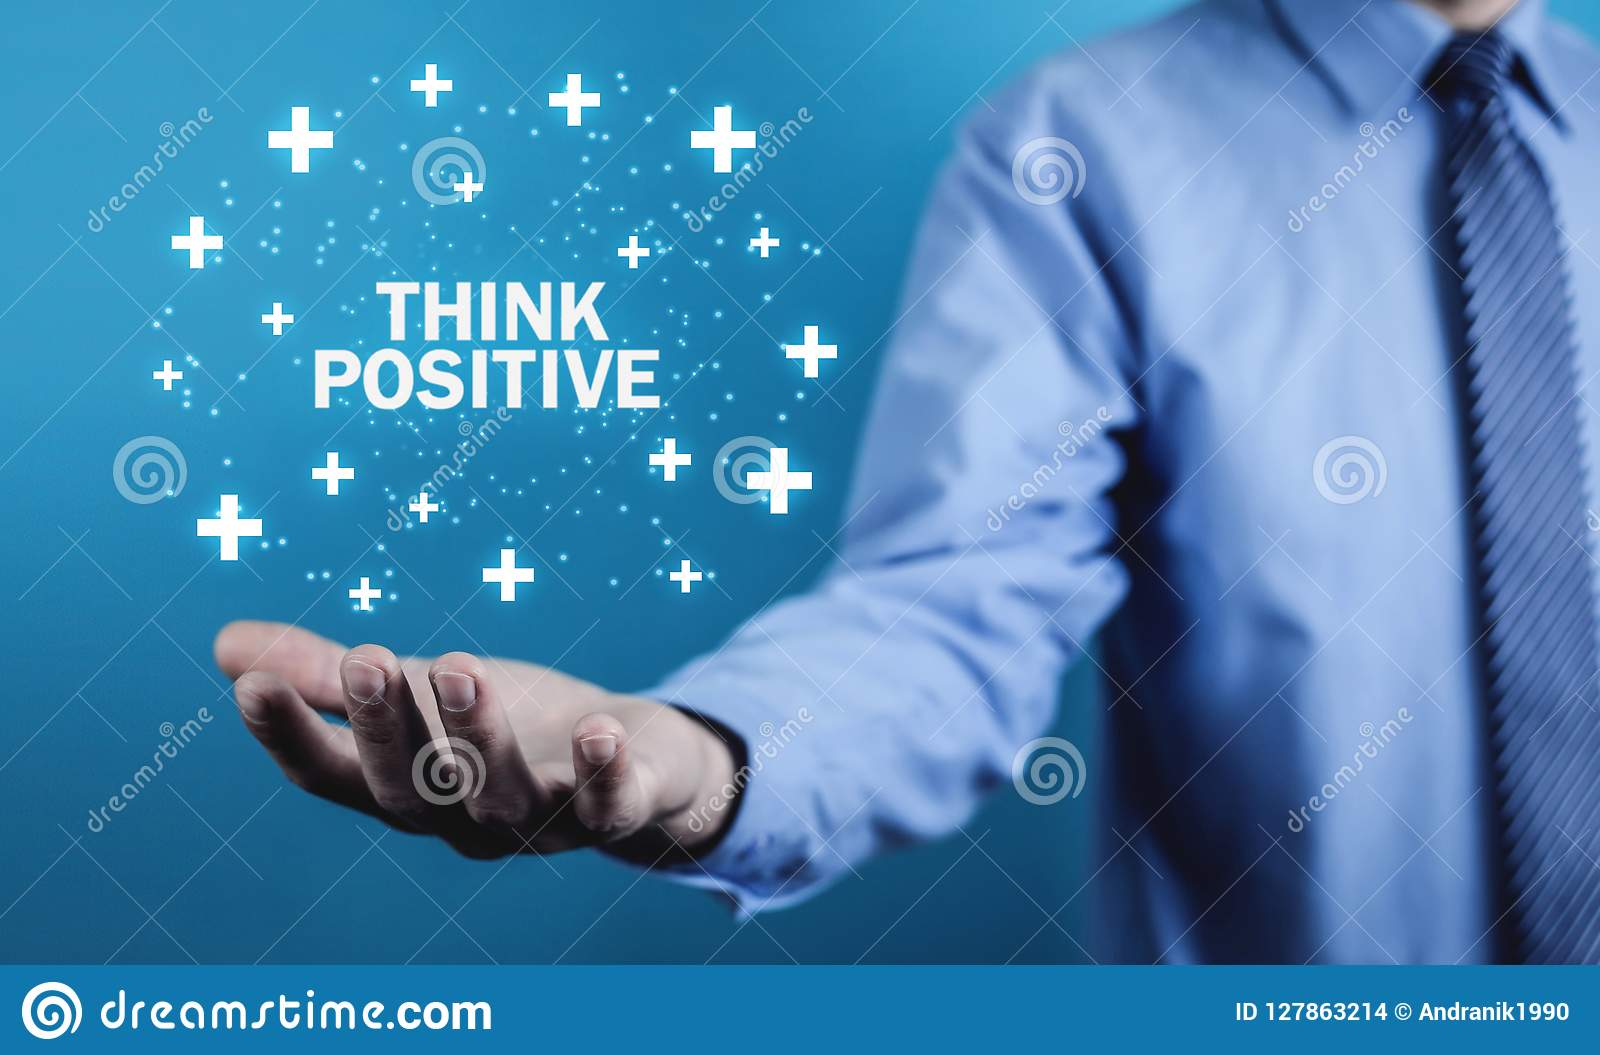 Man holding Think Positive words with plus signs.